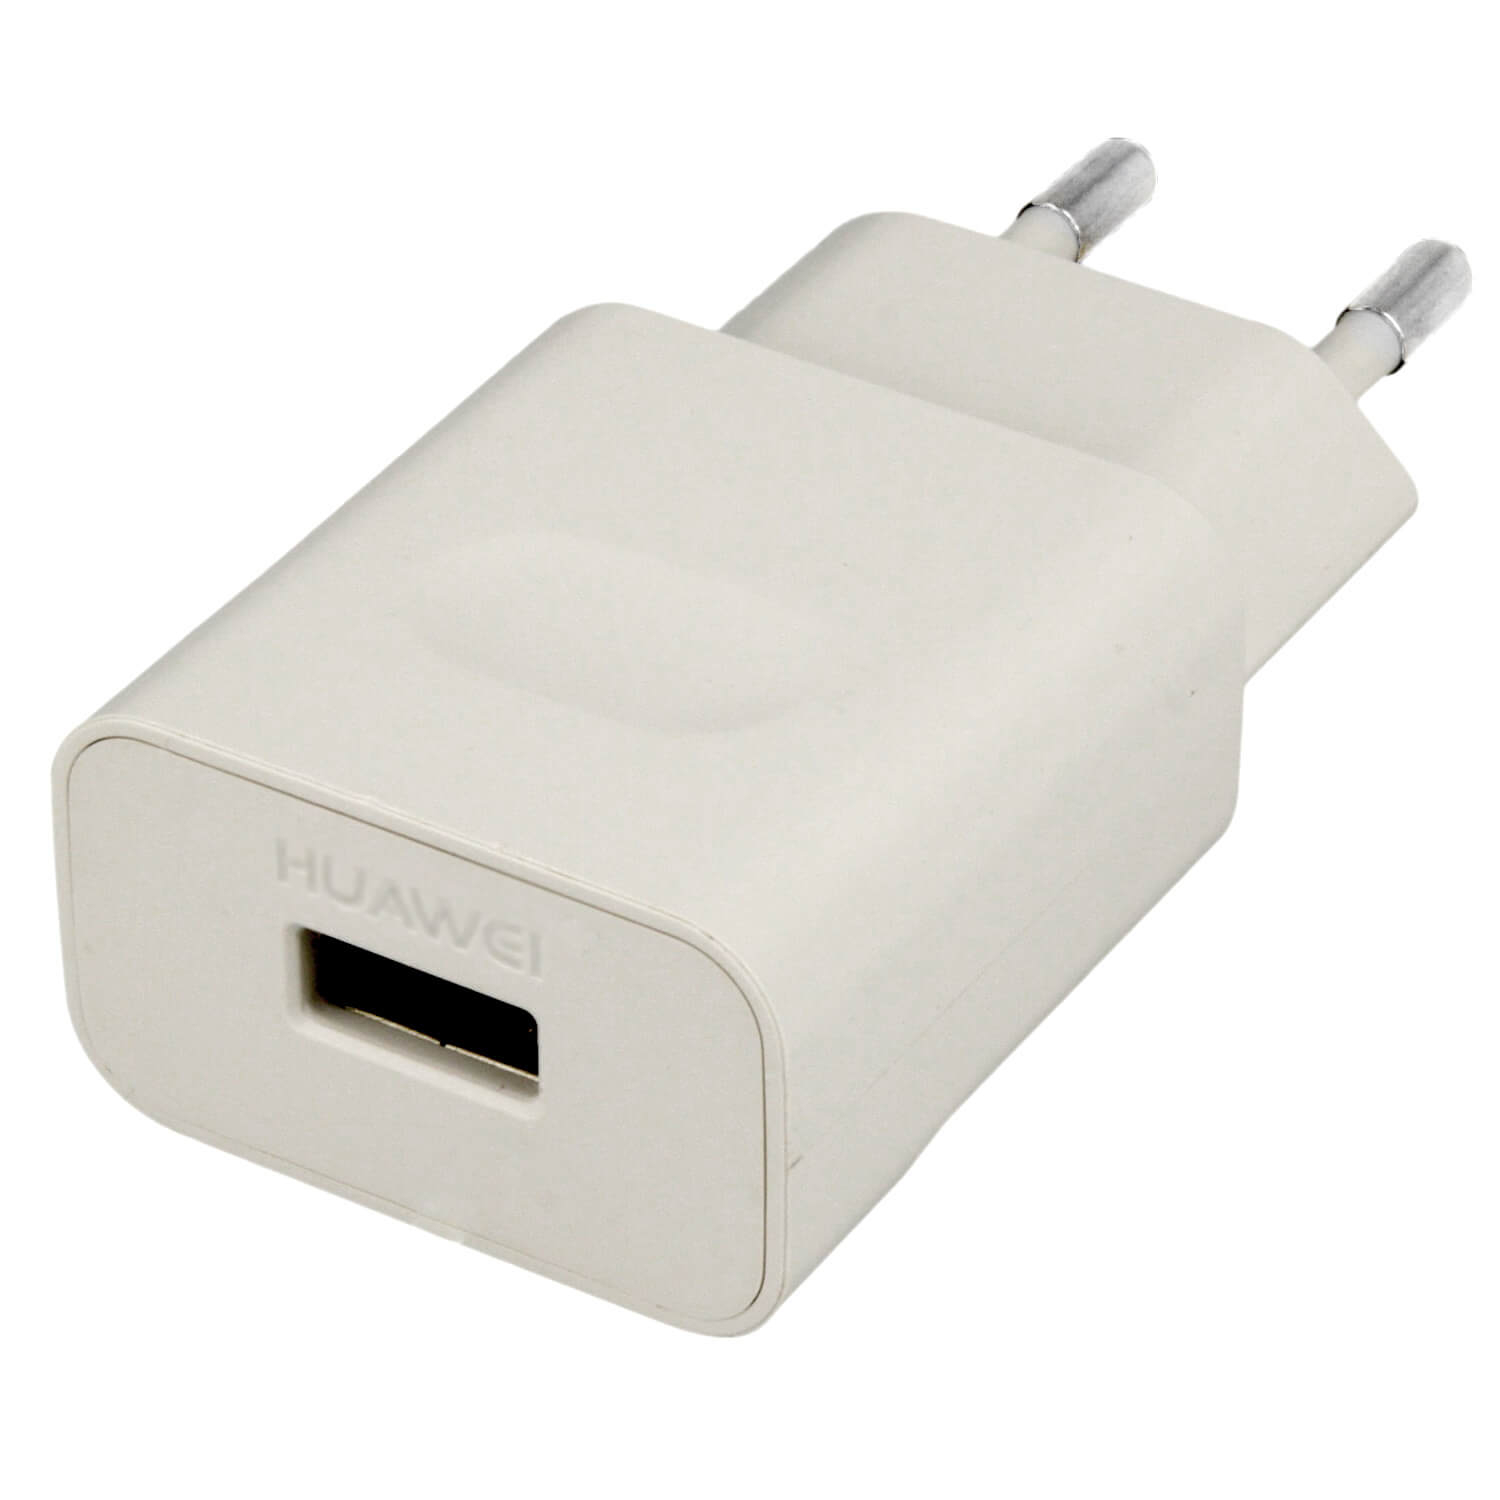 Huawei Fast Travel Charger HW-050200E01 2000mA (white)